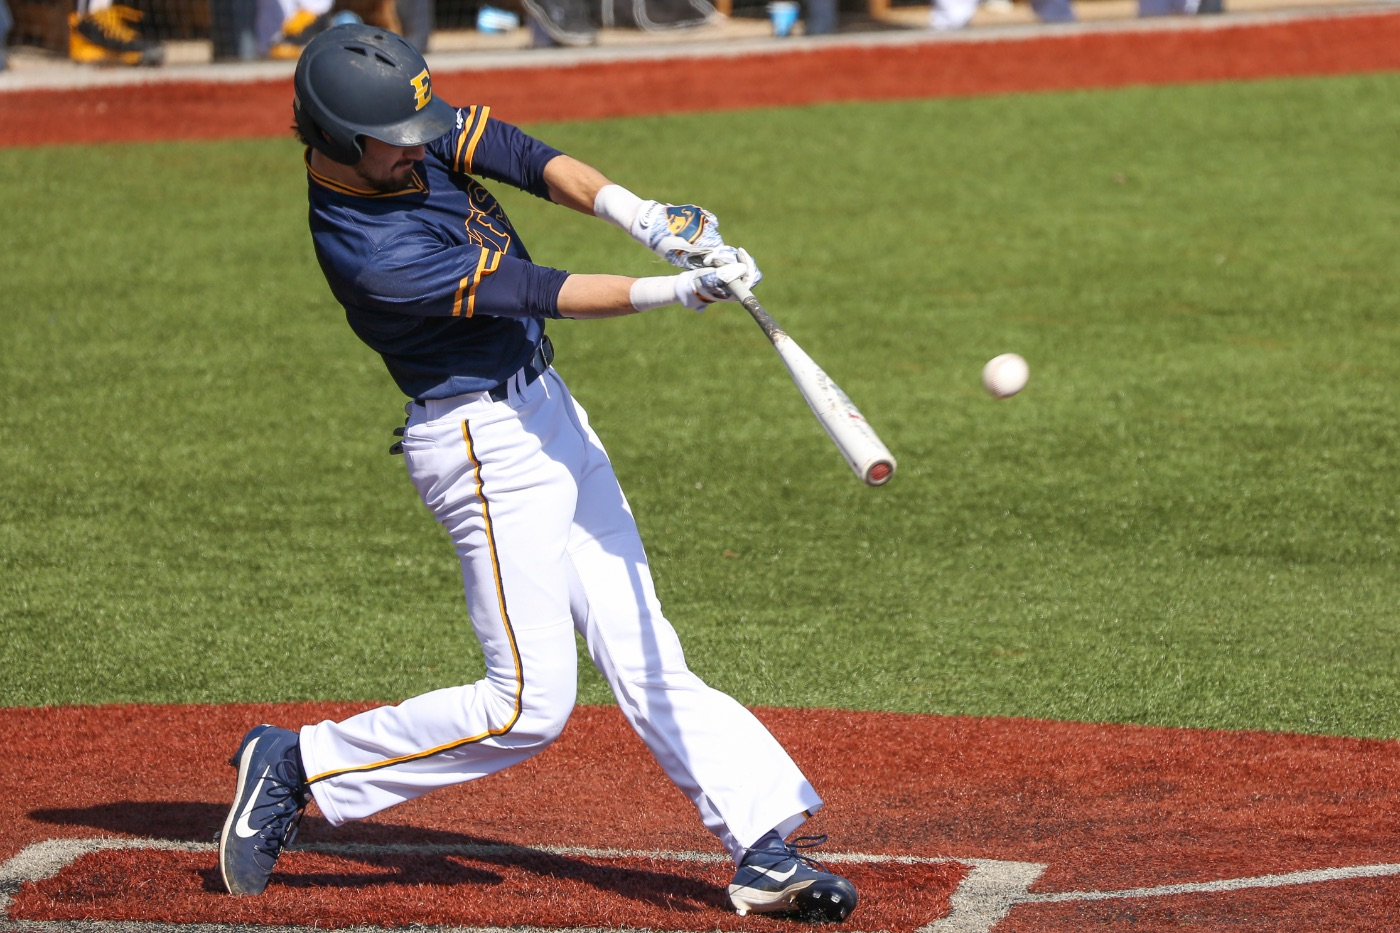 Bucs sweep Catamounts with 11-8 road win